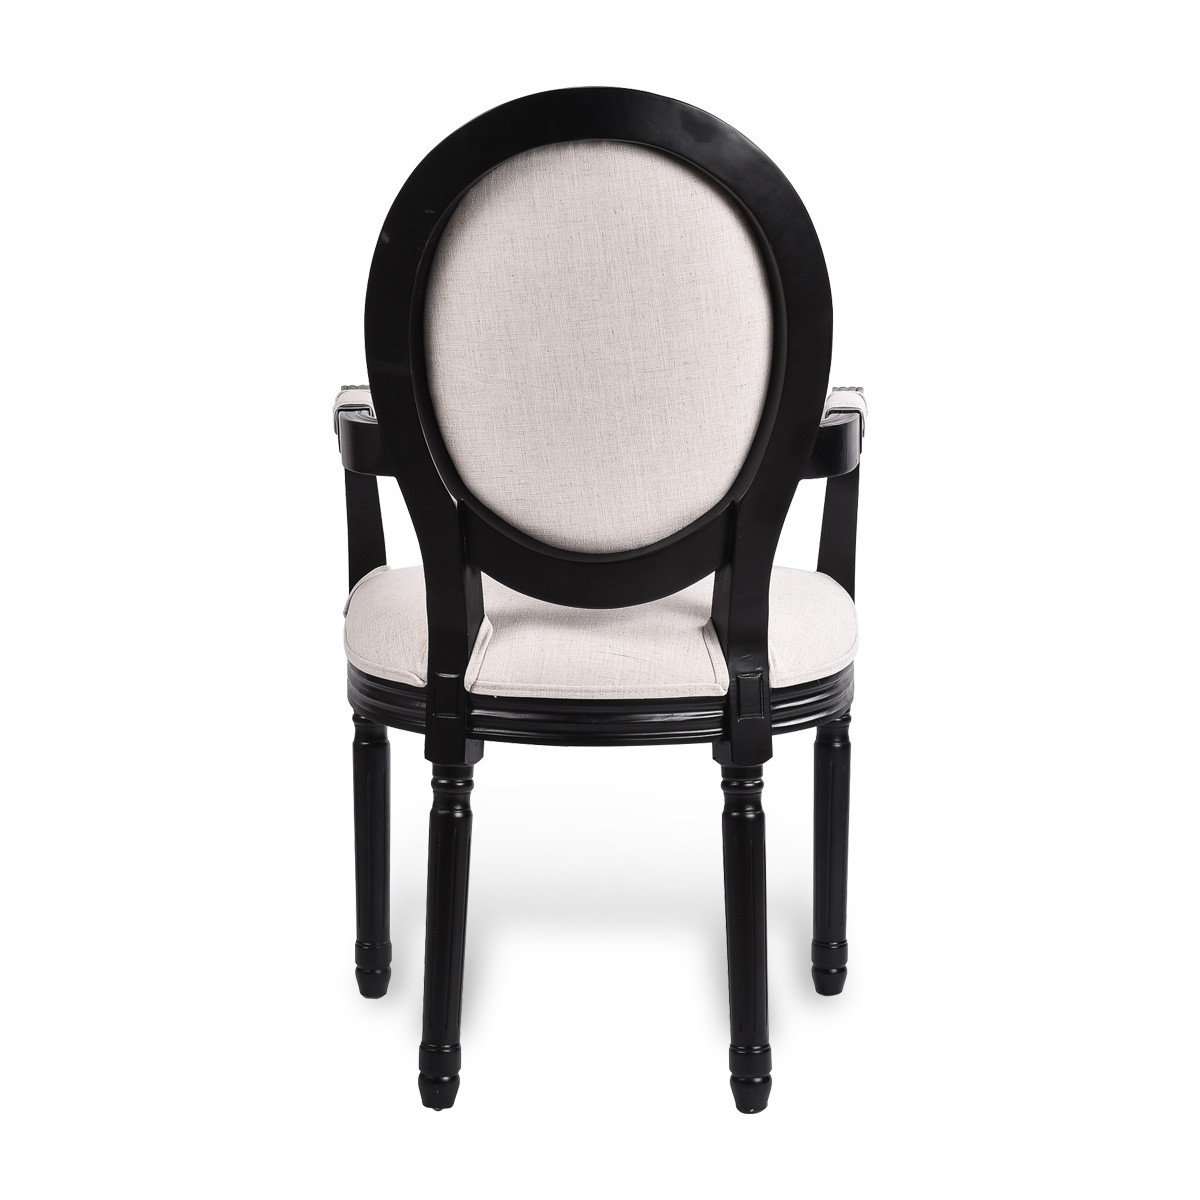 Admirable Louis Dining Armchair Set Of 2 French Provincial Upholstered Carver Chair White Black Washed Oak Camellatalisay Diy Chair Ideas Camellatalisaycom